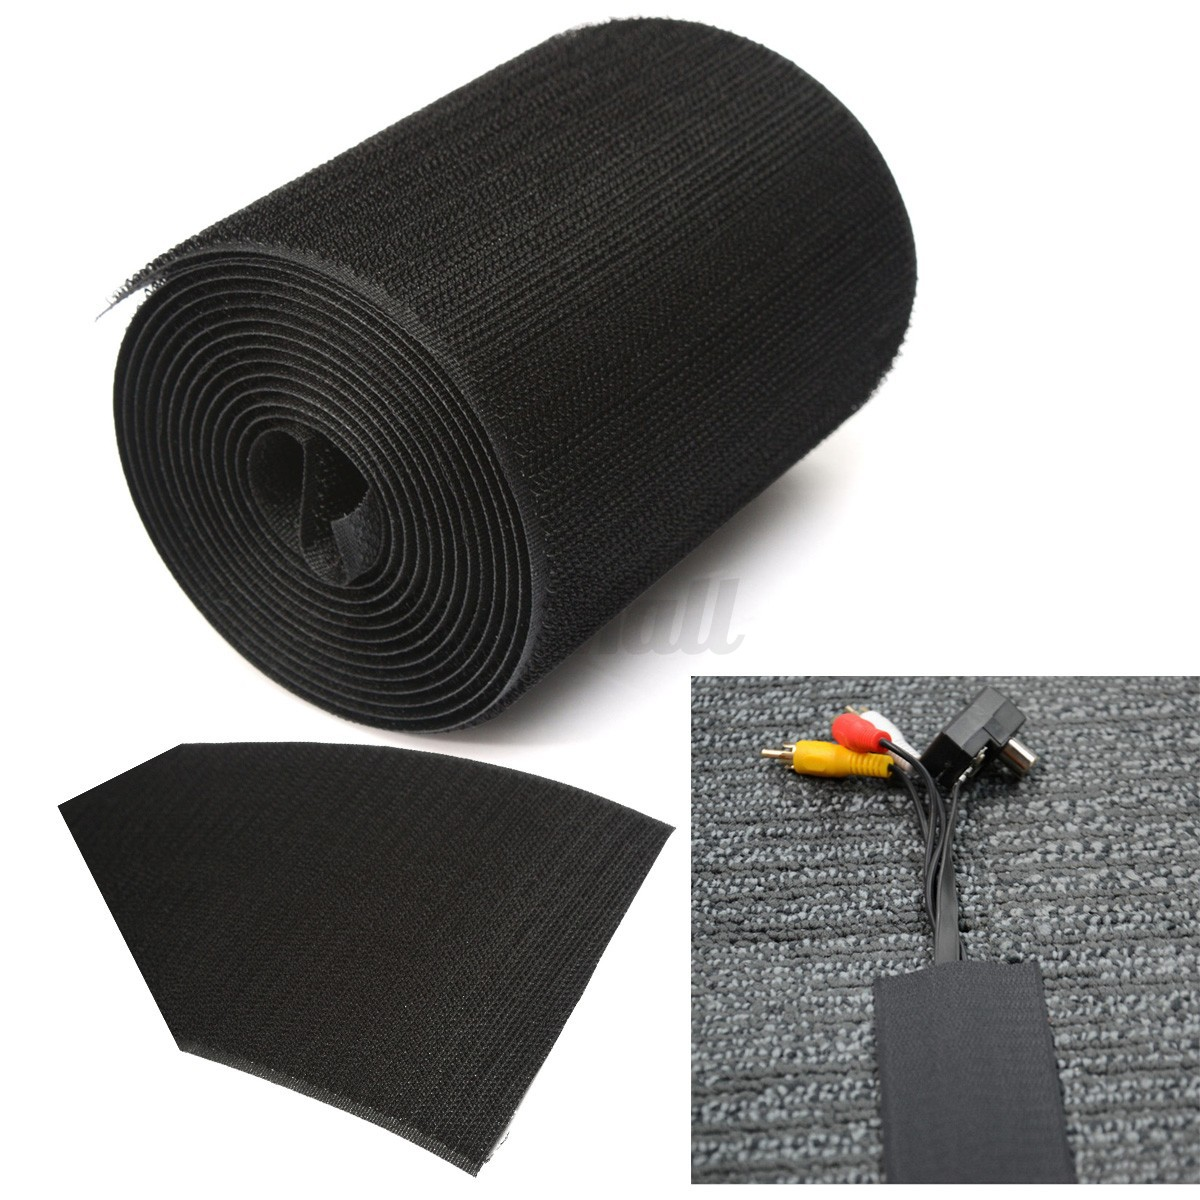 4 cable management organizer floor carpet nylon cover 2m wire sleeve protector ebay. Black Bedroom Furniture Sets. Home Design Ideas